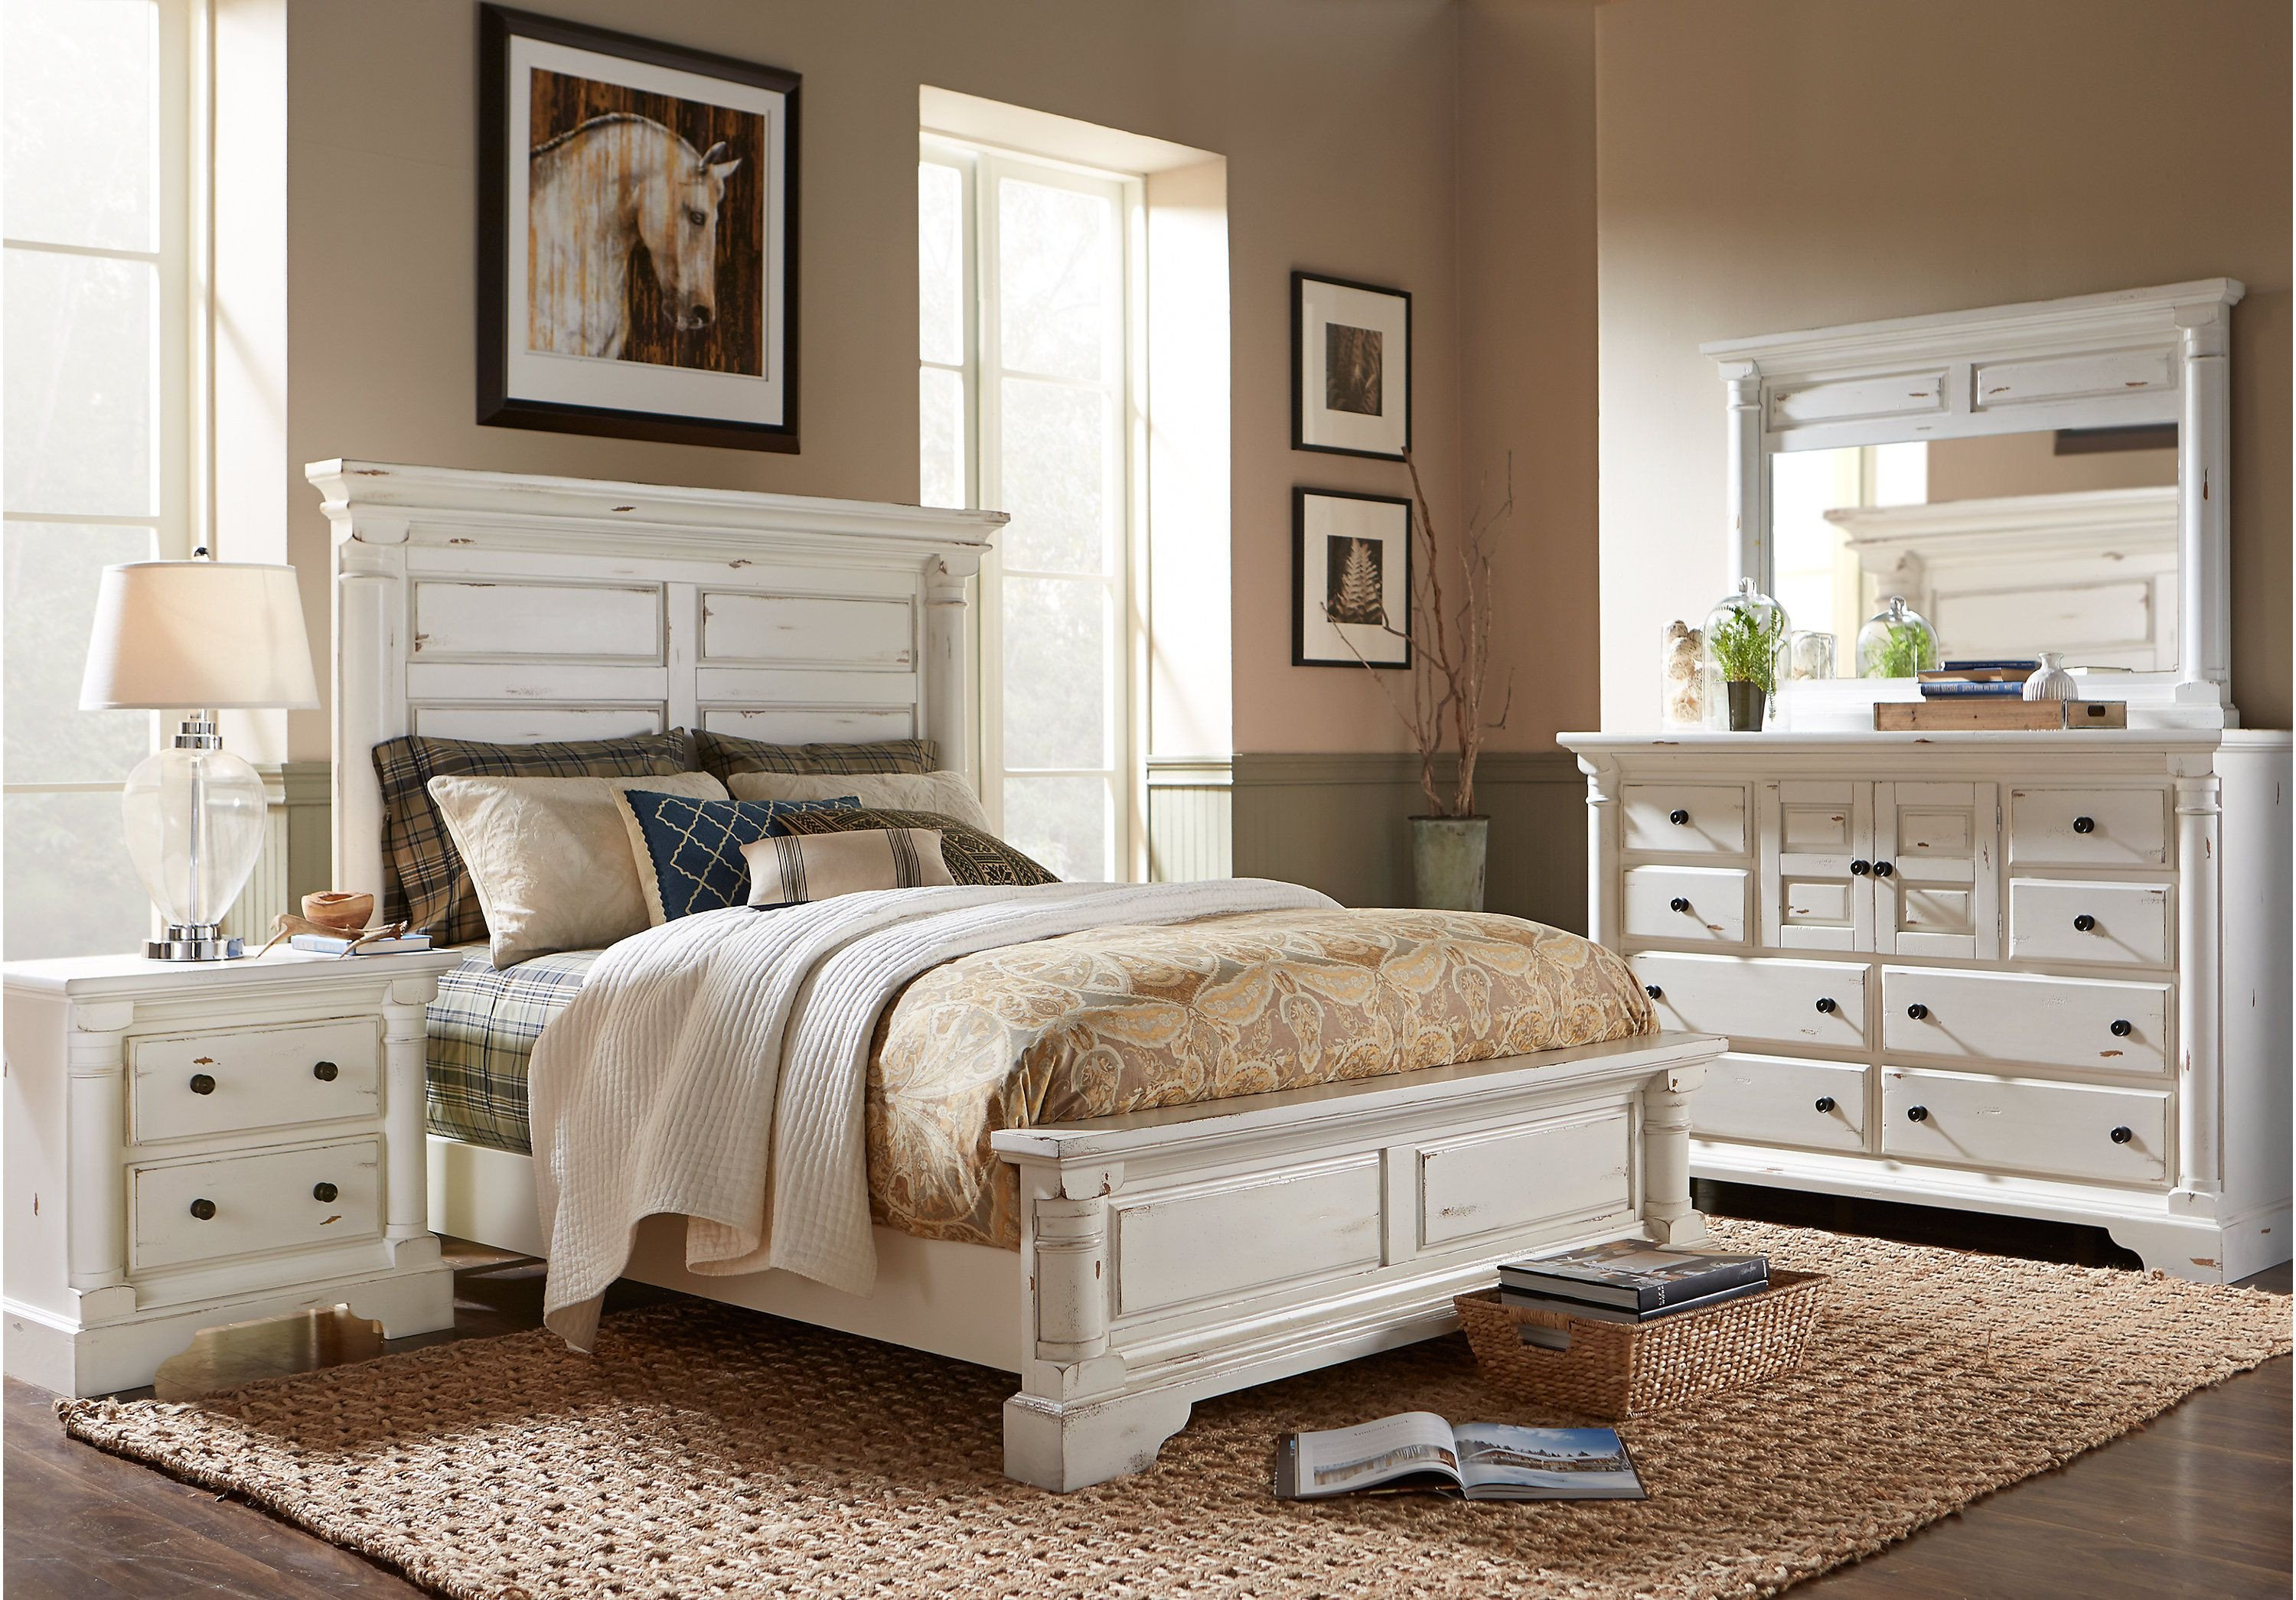 Distressed Wood Bedroom Furniture Elegant Claymore Park F White 5 Pc King Panel Bedroom